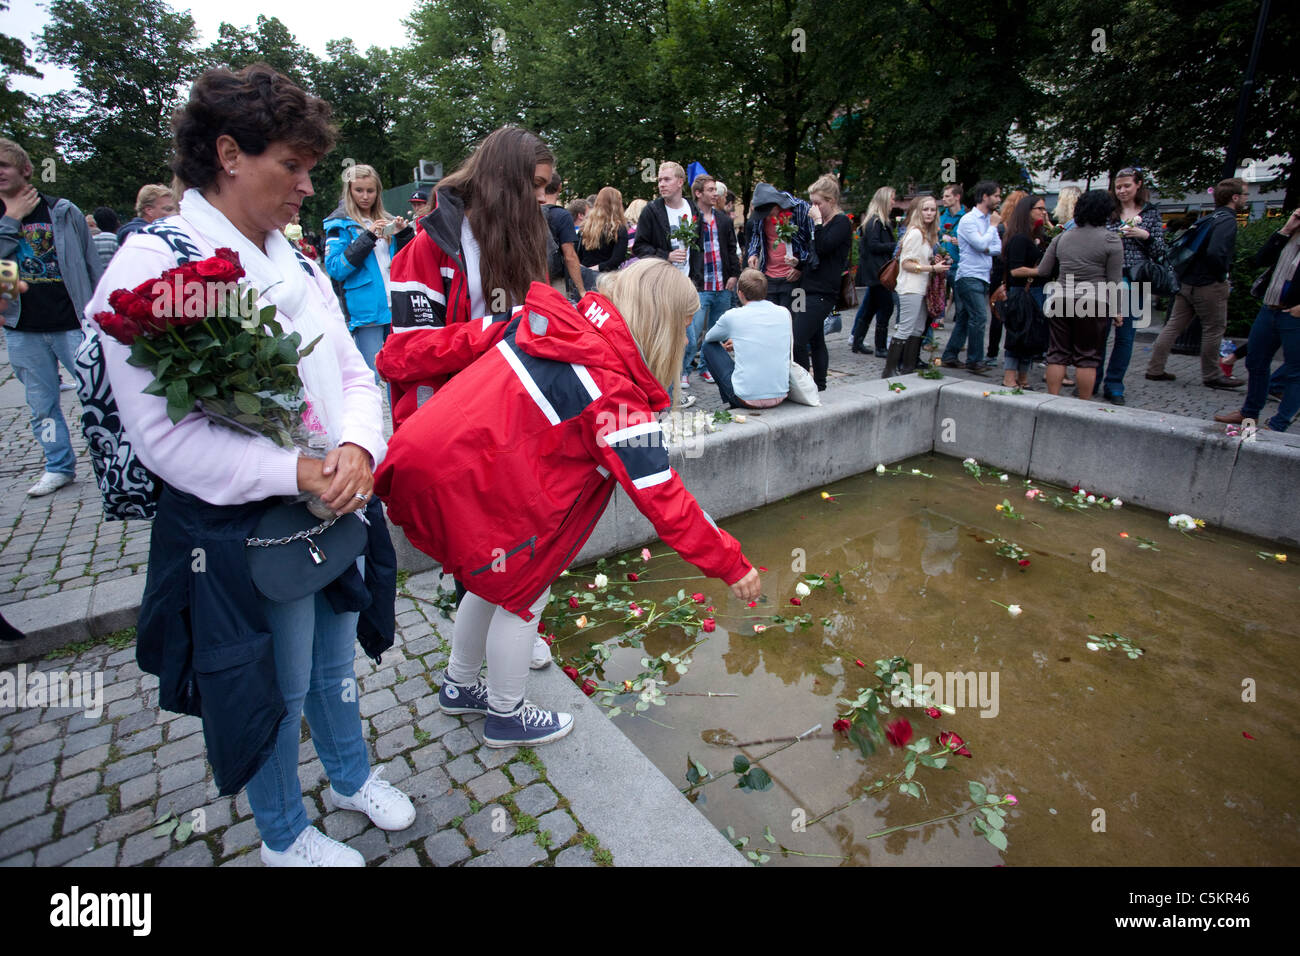 Thousands of Norwegian's laid a rose flower in Oslo as part of a vigil for victims of attacks.Photo:Jeff Gilbert - Stock Image